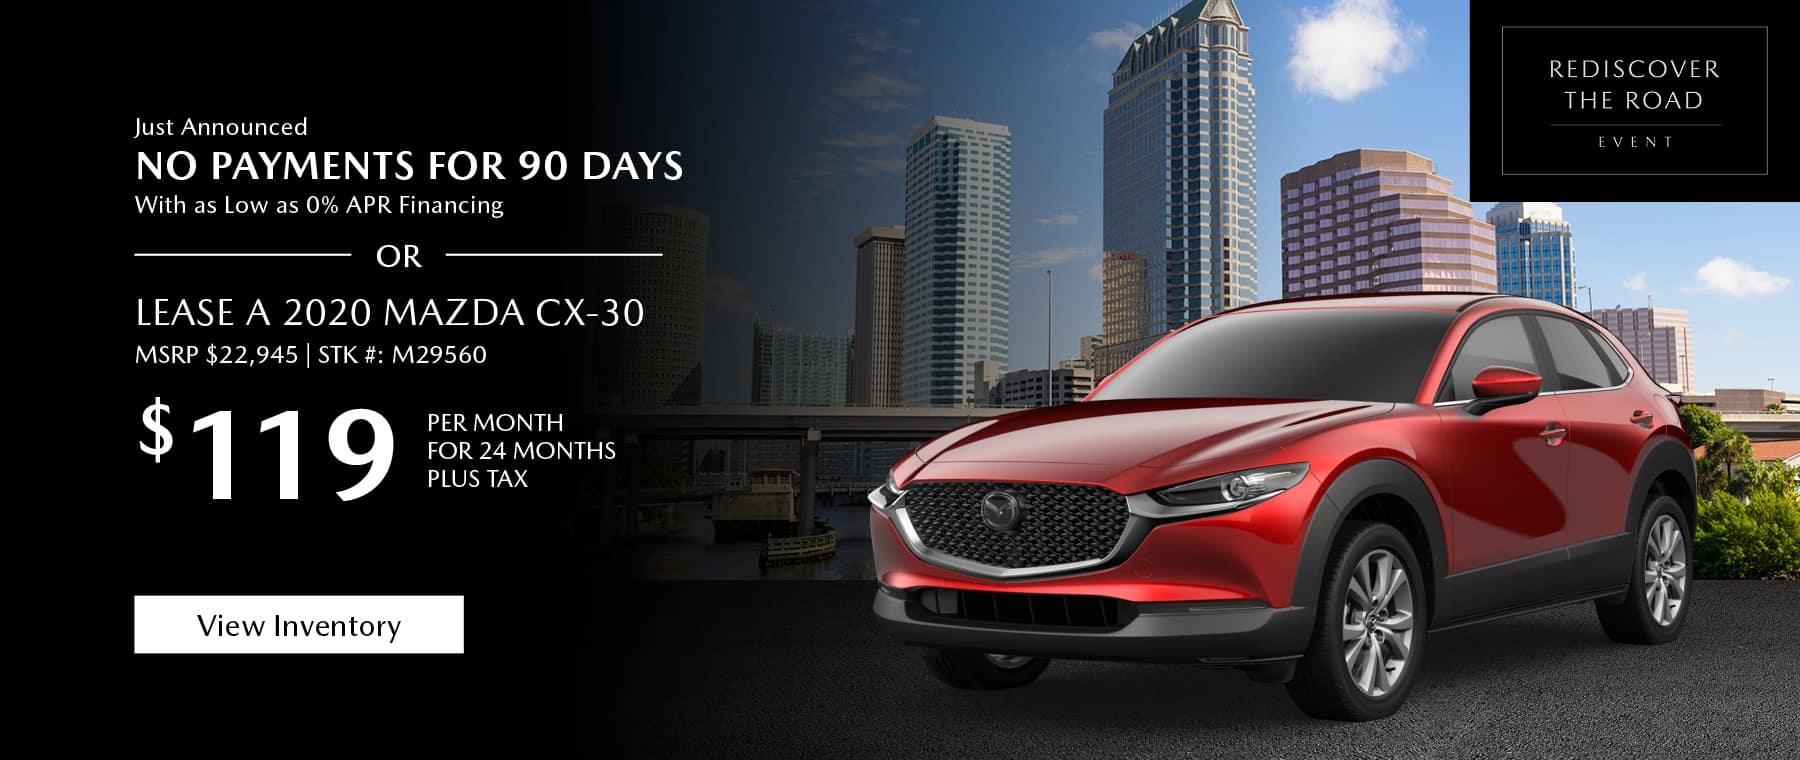 Just Announced, No payments for 90 days with as low as %0 APR financing, or lease the 2020 Mazda CX-30 for $139 per month, plus tax for 24 months. Click or tap here to view our inventory.